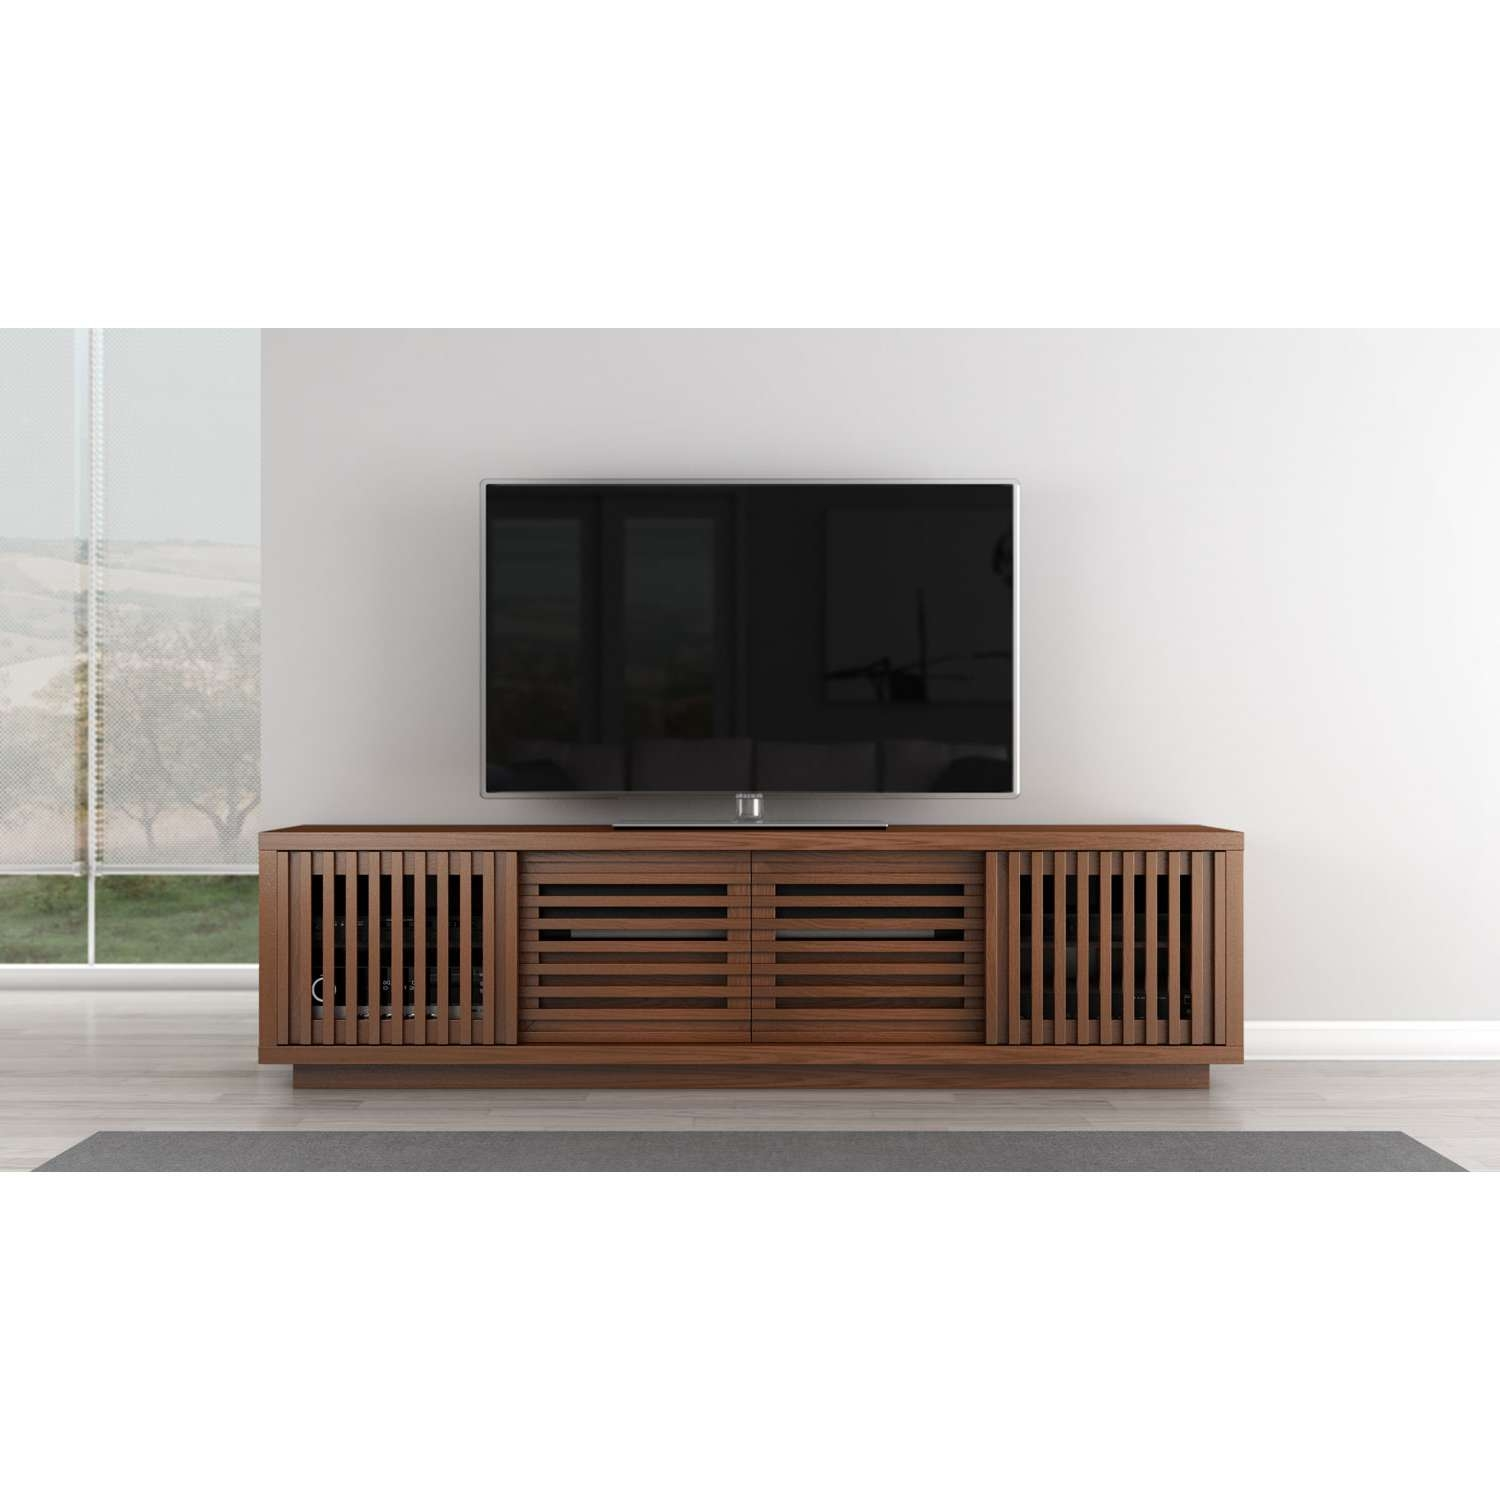 Honey Oak Tv Stand : Innovative Designs Oak Tv Console – Marku Pertaining To Honey Oak Tv Stands (View 4 of 15)